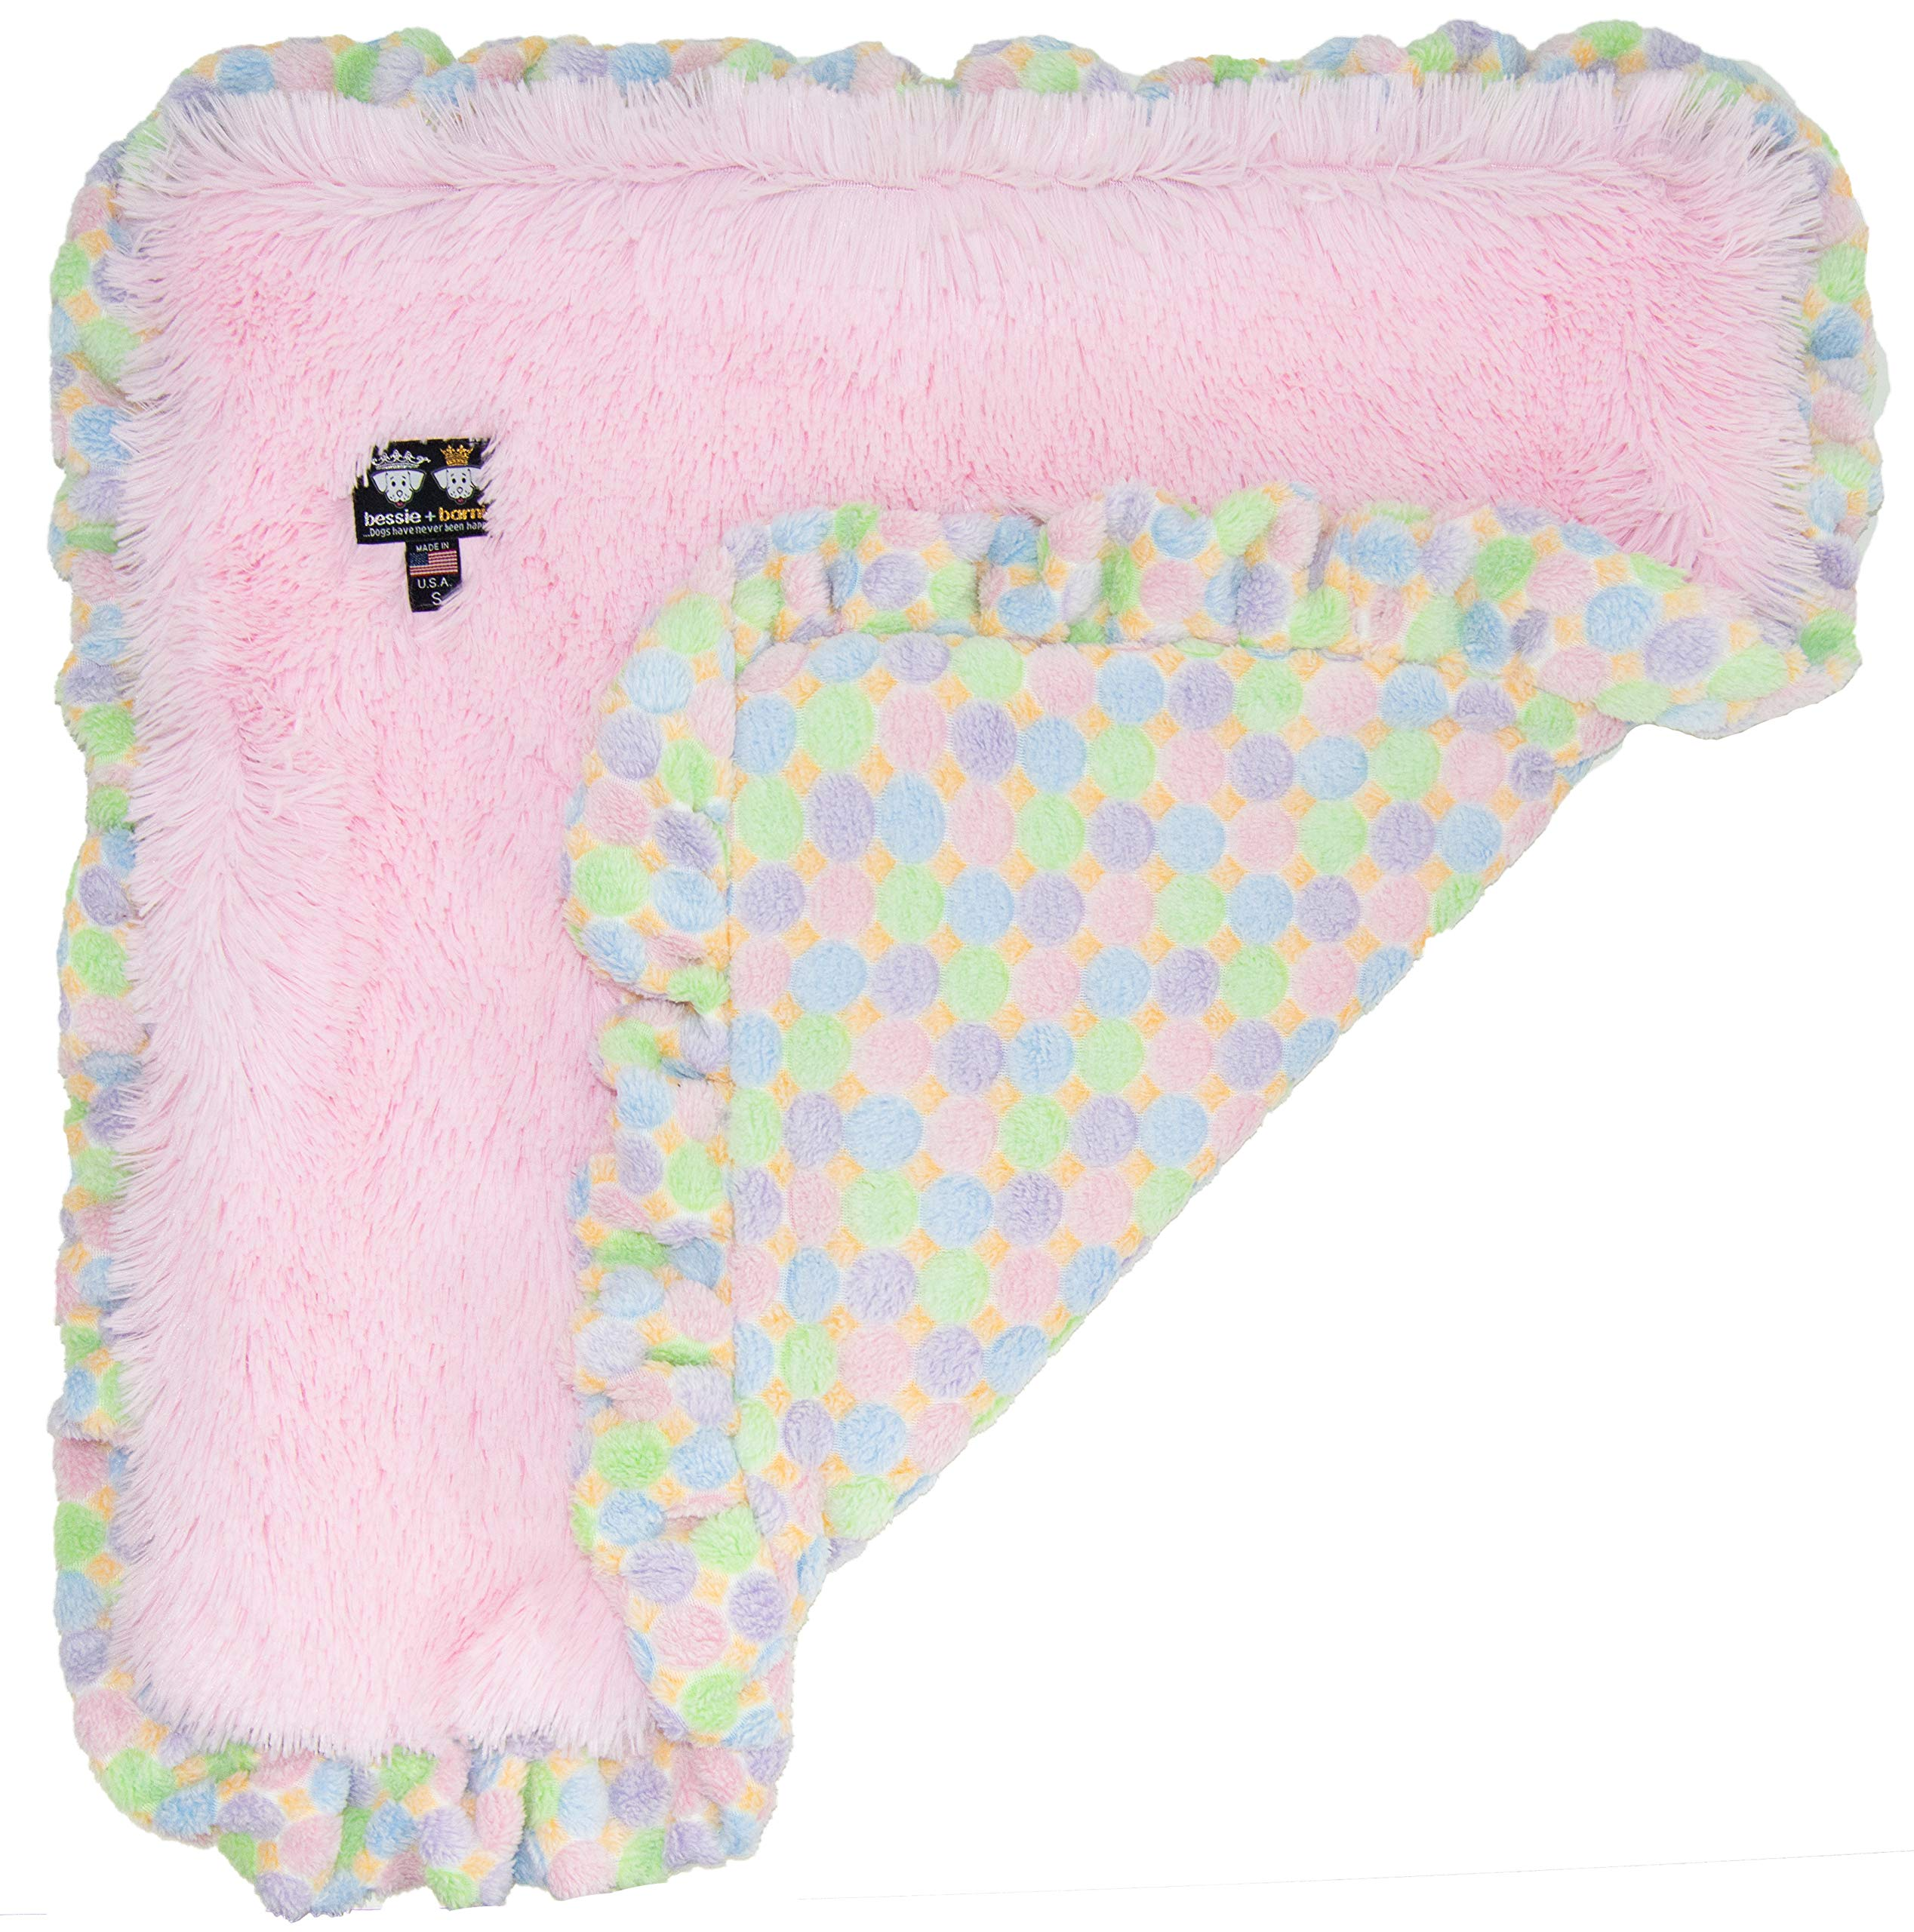 BESSIE AND BARNIE Bubble Gum/ Ice Cream (Ruffles) Luxury Ultra Plush Faux Fur Pet, Dog, Cat, Puppy Super Soft Reversible Blanket (Multiple Sizes), MD - 36'' x 28'' by Bessie and Barnie